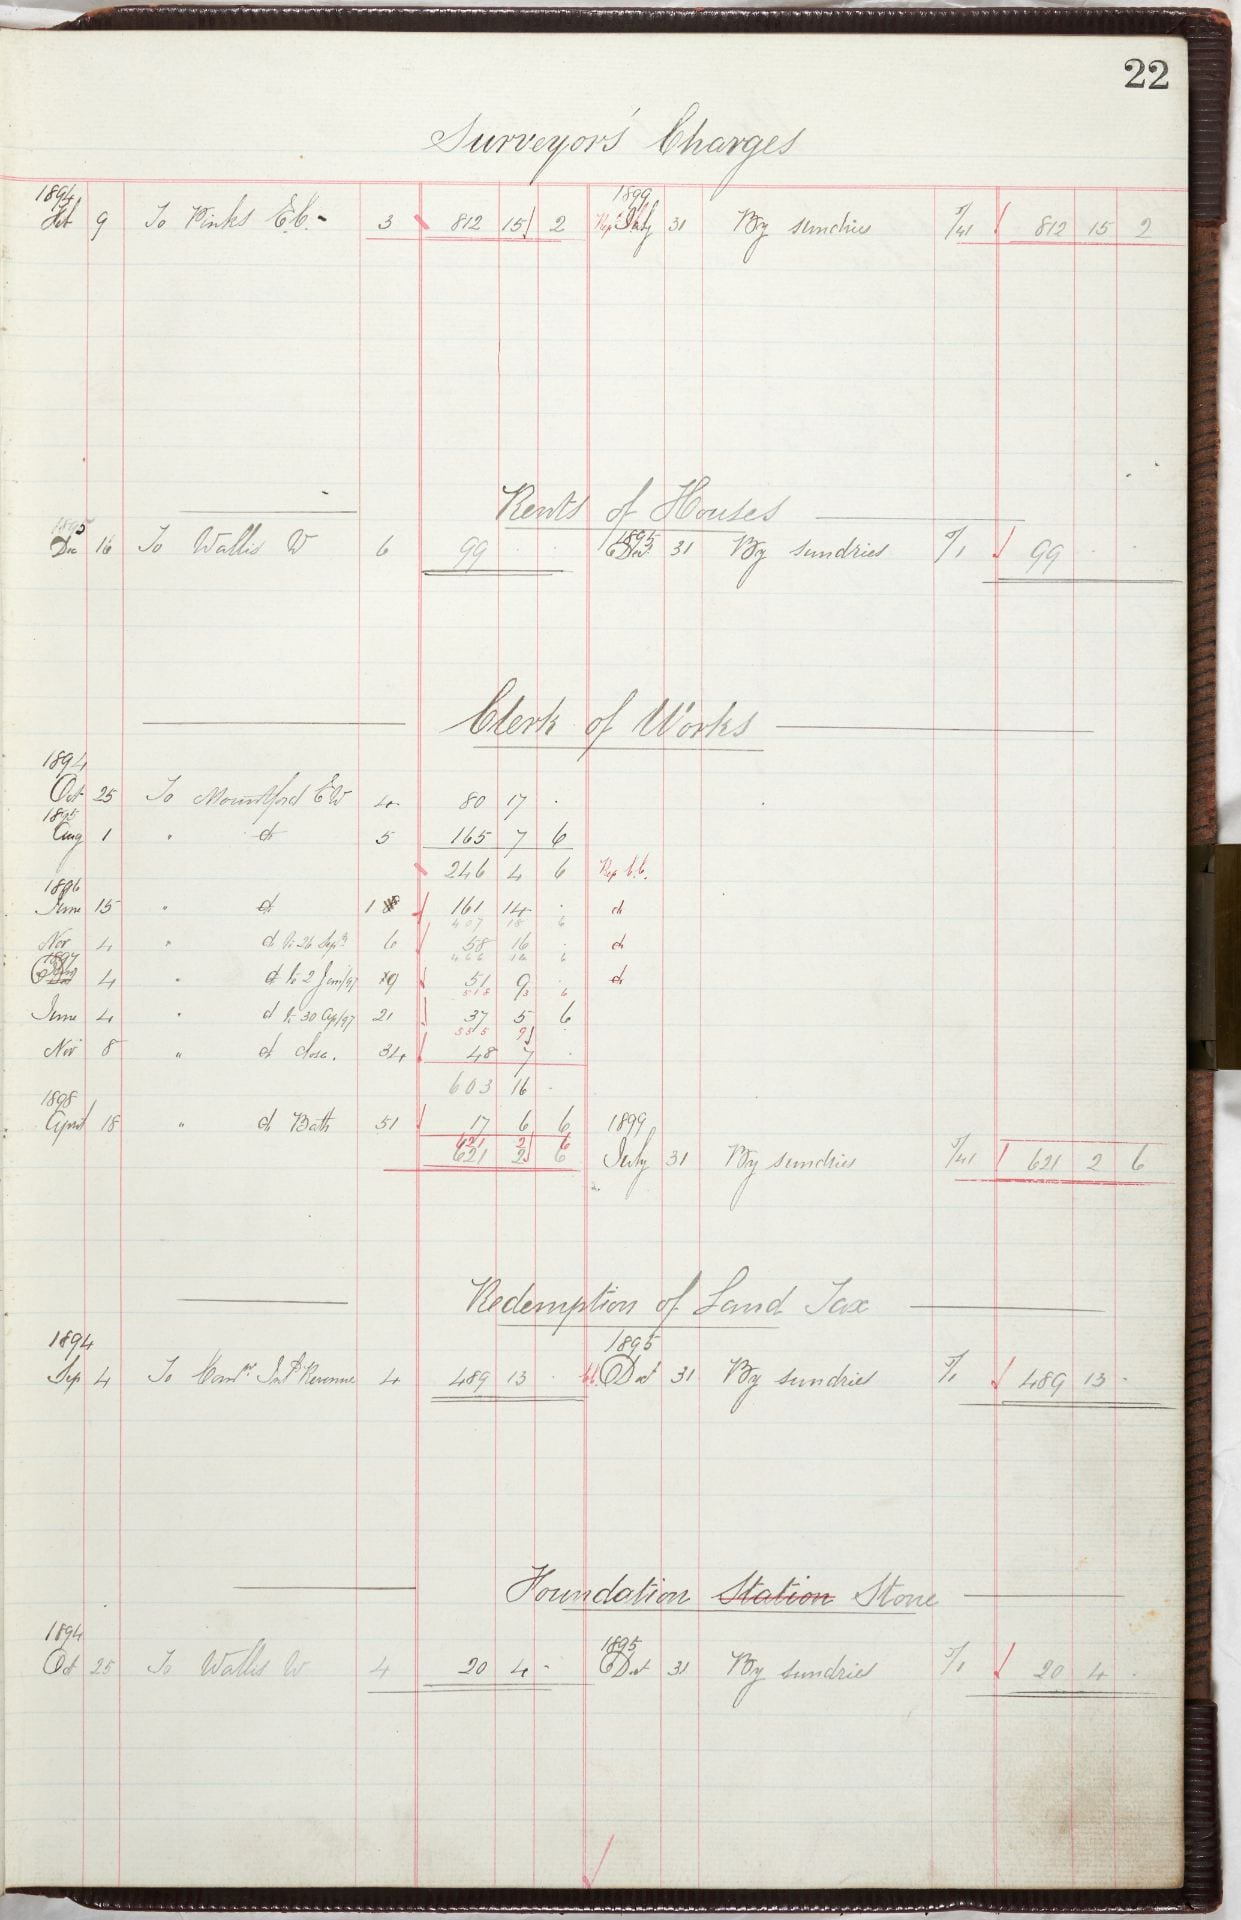 Financial ledger page 22 Surveryor's charges. Costs arising dated from 1894. Sub headings include: Rents of Houses, Clerk of Works, Redemption of Land tax, Foundation Stone.